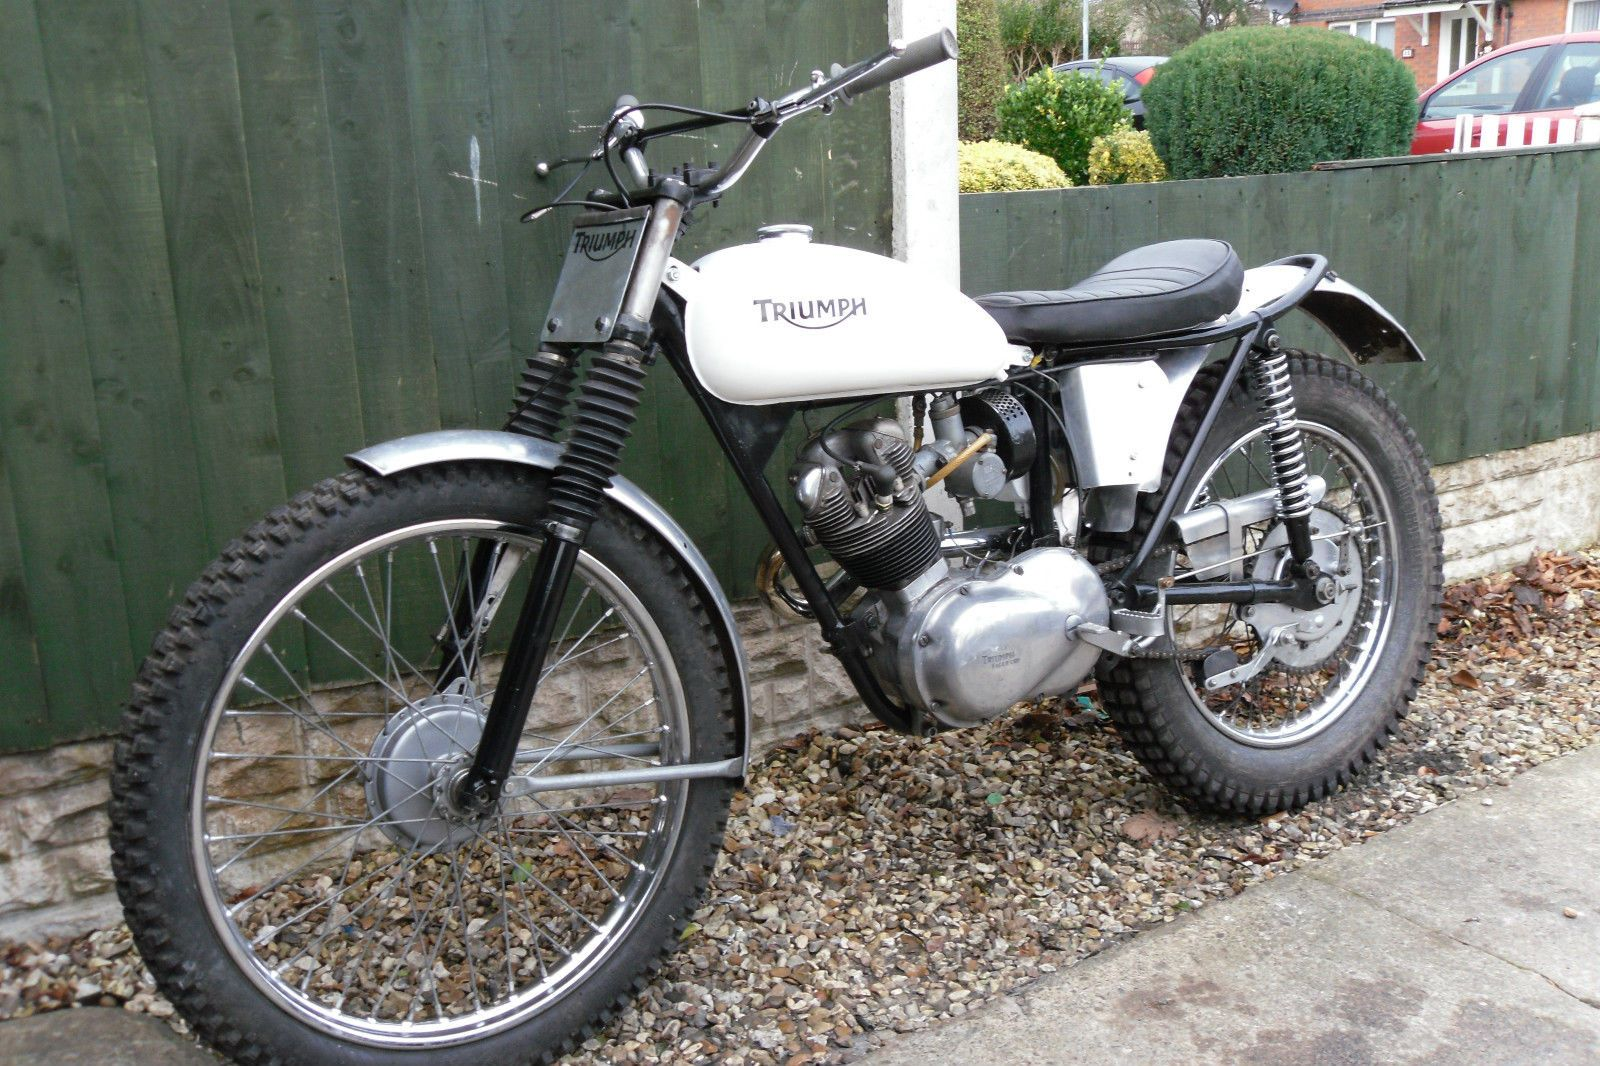 1967 triumph cub 1967 triumph t20 tiger cub scrambler log in to view results cubbies pinterest tiger cub scrambler and tigers